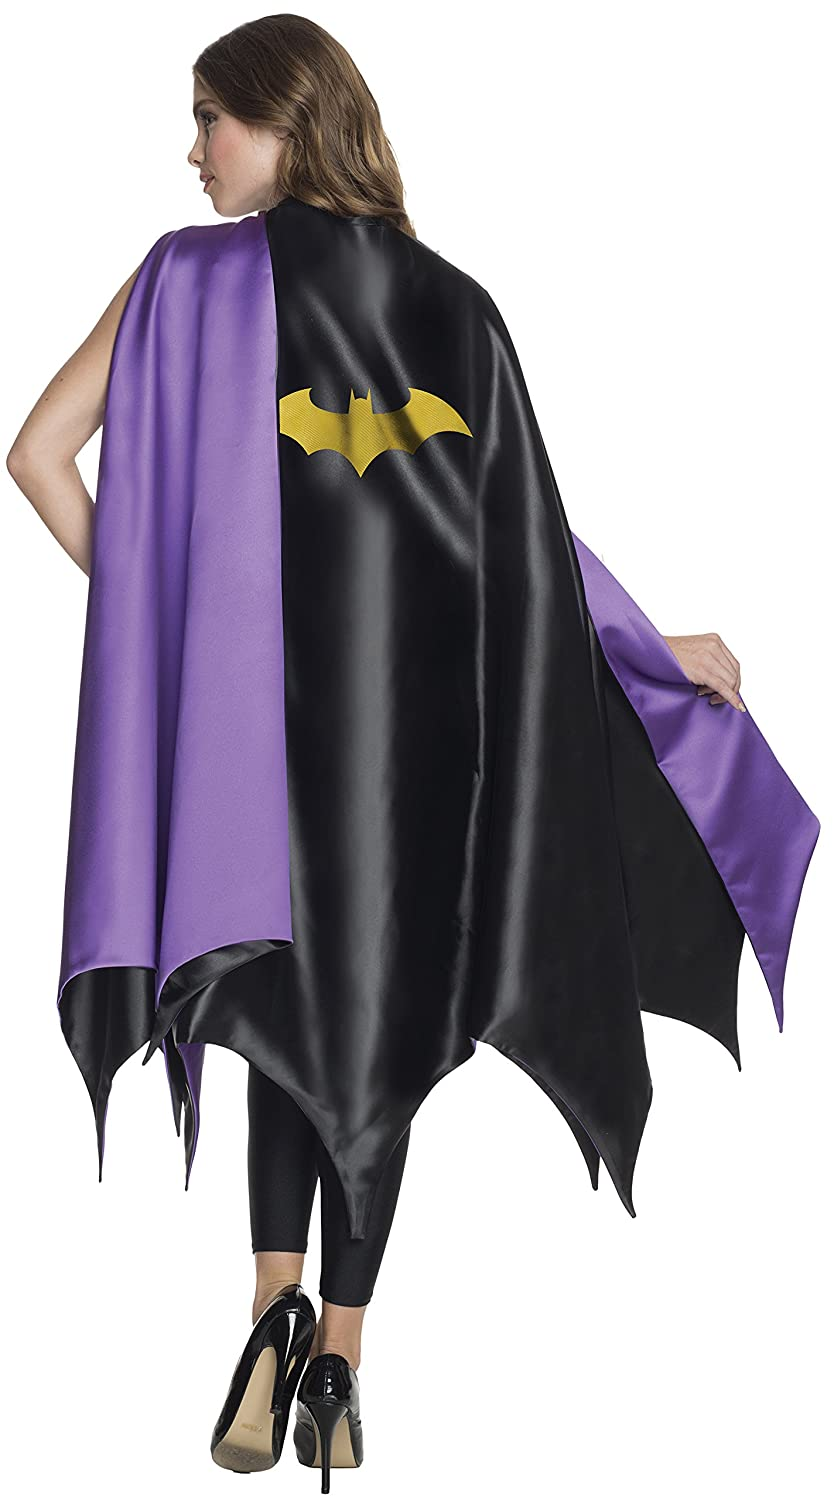 Amazon.com Rubieu0027s Womenu0027s DC Superheroes Deluxe Batgirl Cape Multi One Size Clothing  sc 1 st  Amazon.com & Amazon.com: Rubieu0027s Womenu0027s DC Superheroes Deluxe Batgirl Cape ...